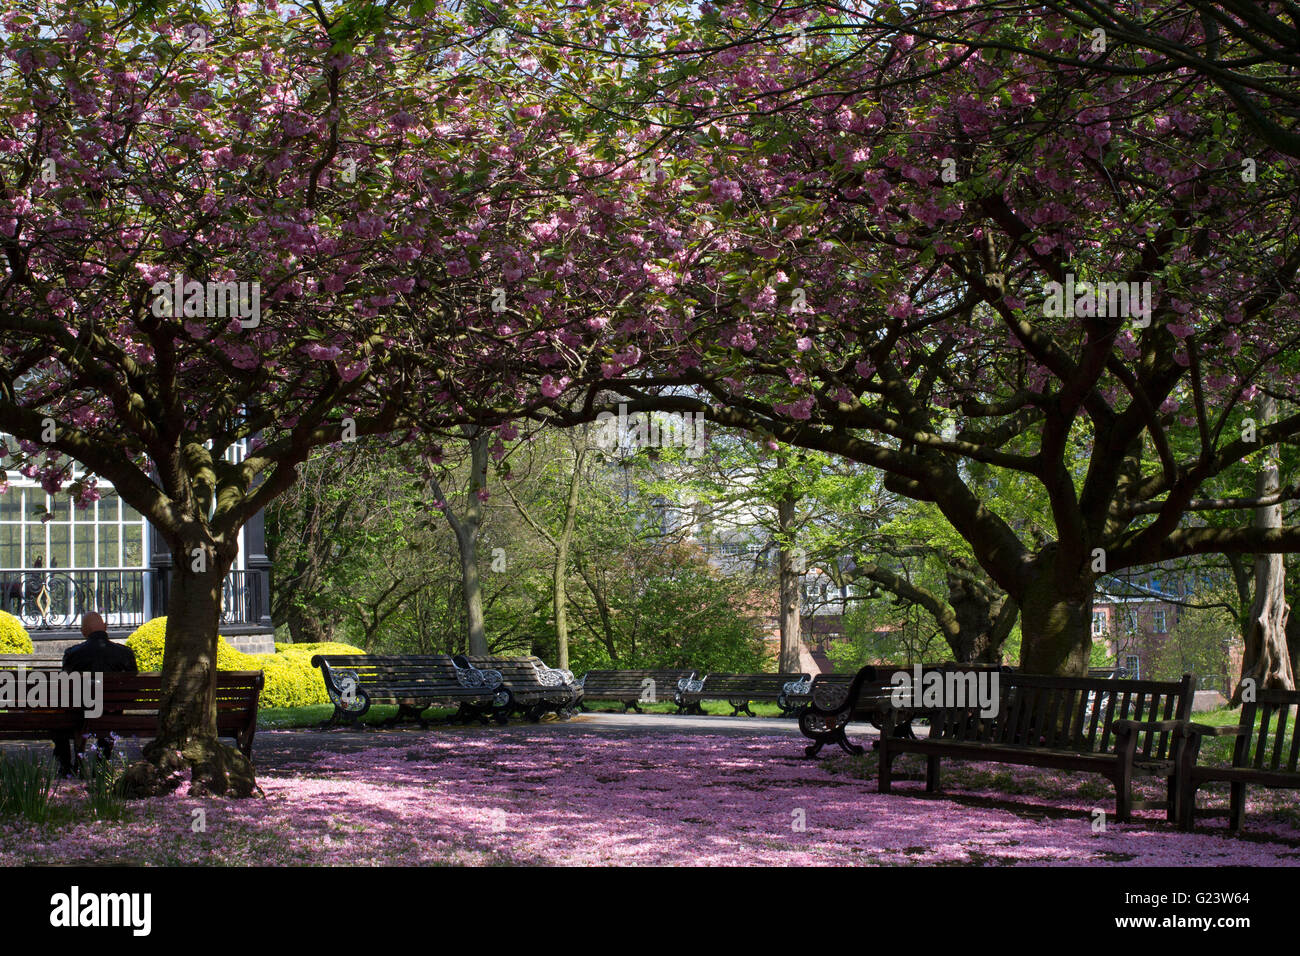 The gardens at Nottingham Castle in Nottingham. - Stock Image